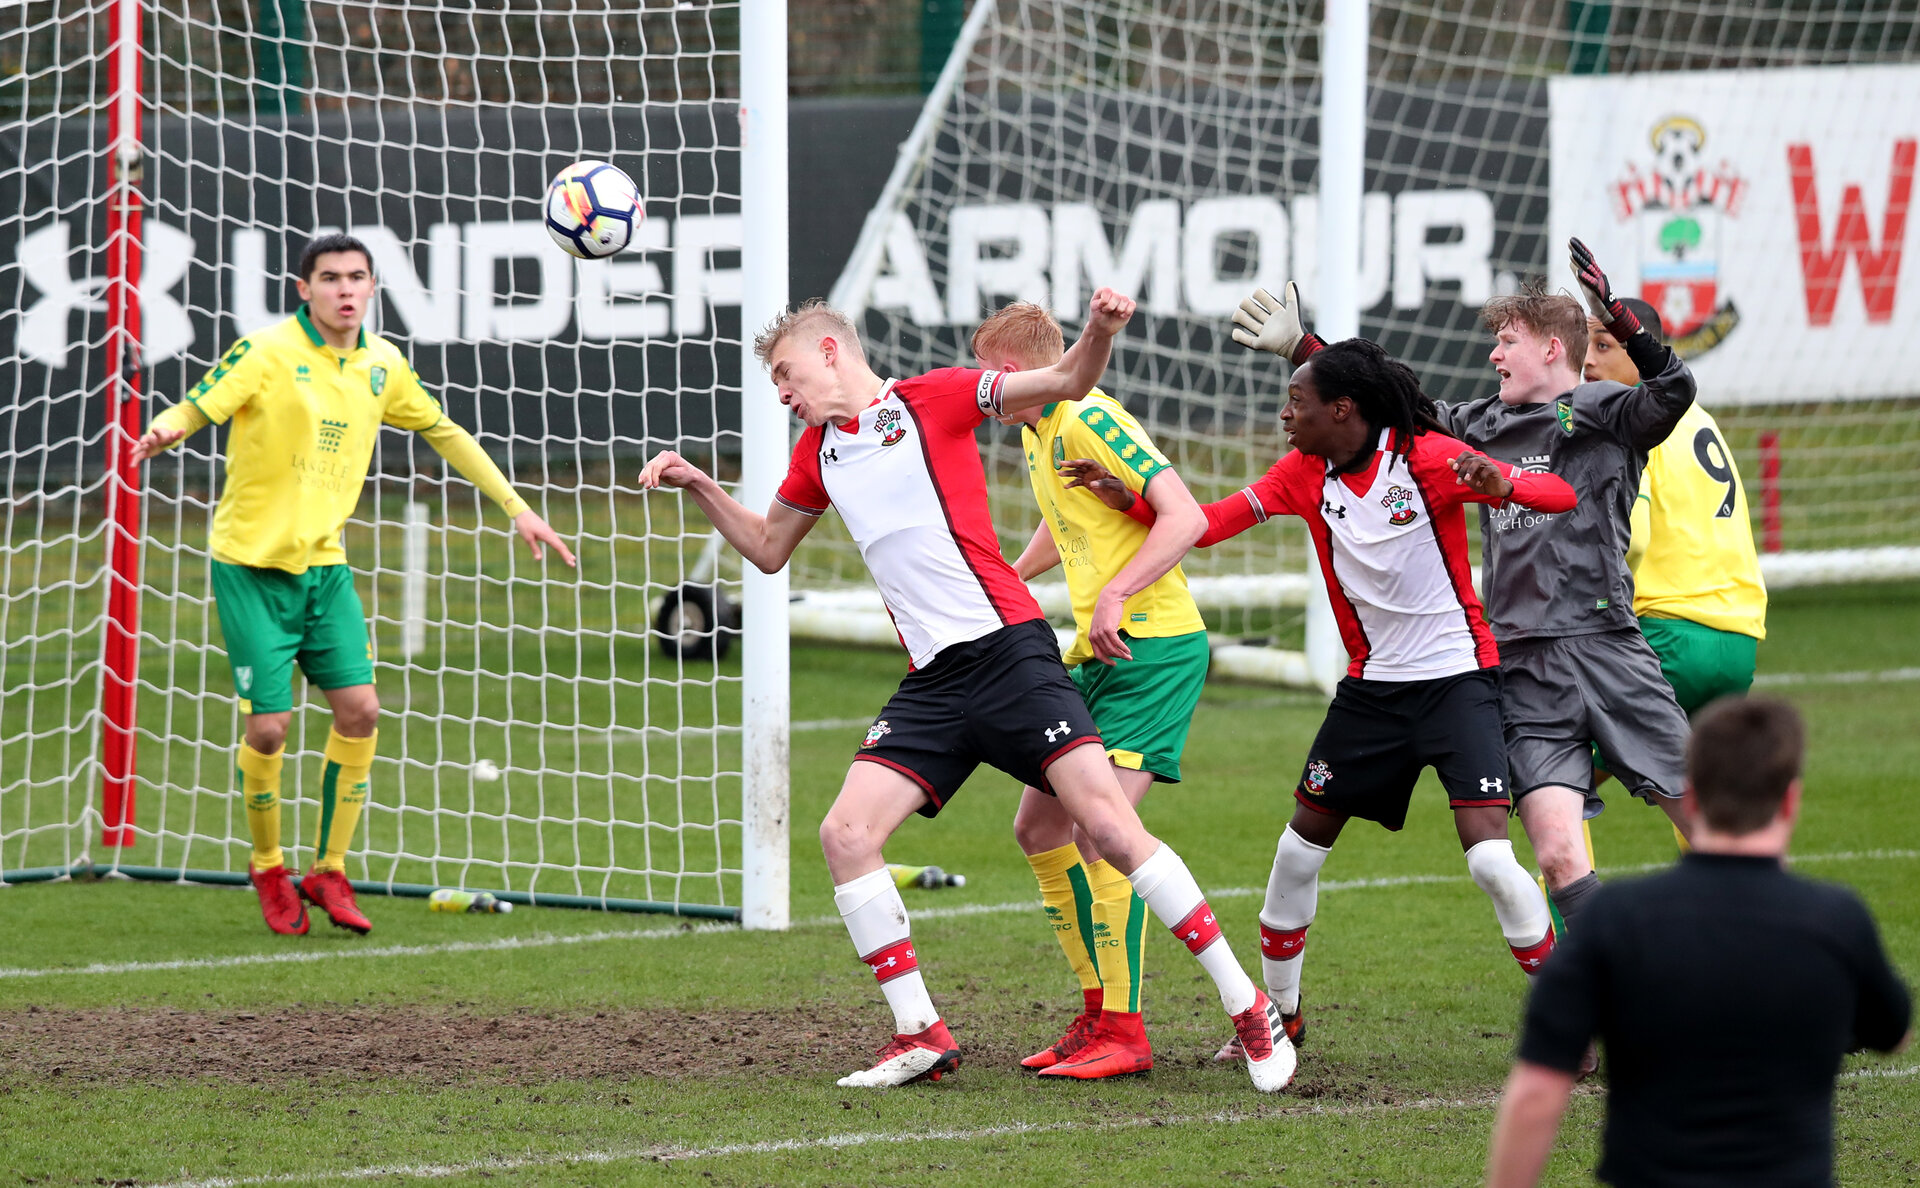 Christoph Klarer scores but the referr rules it out for a foul during the U18 PL match between Southampton and Norwich City, pictured at the Staplewood Campus, Southampton, 10th February 2018